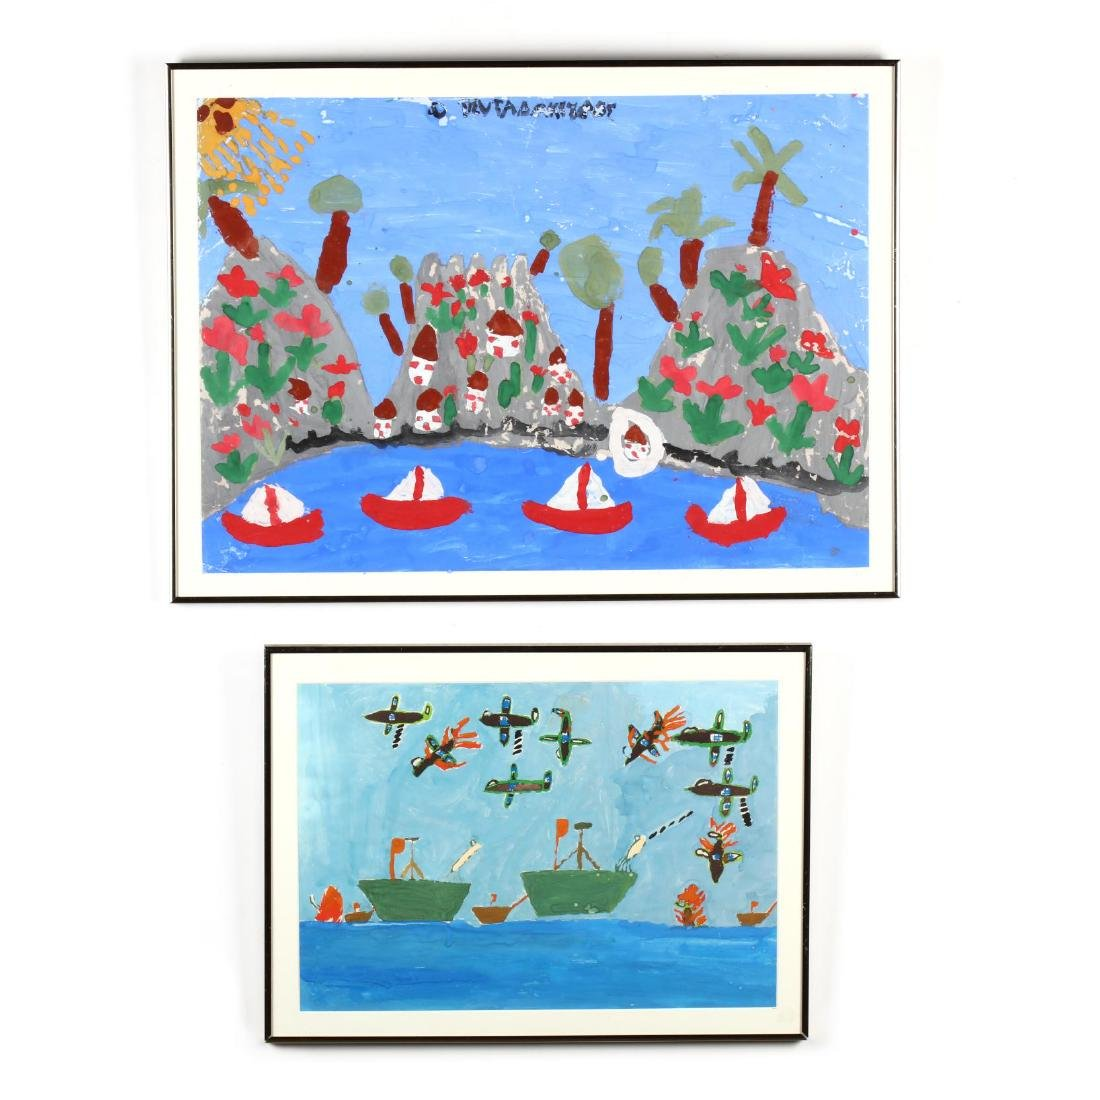 Two Cypriot Paintings by Greek Refugee Children